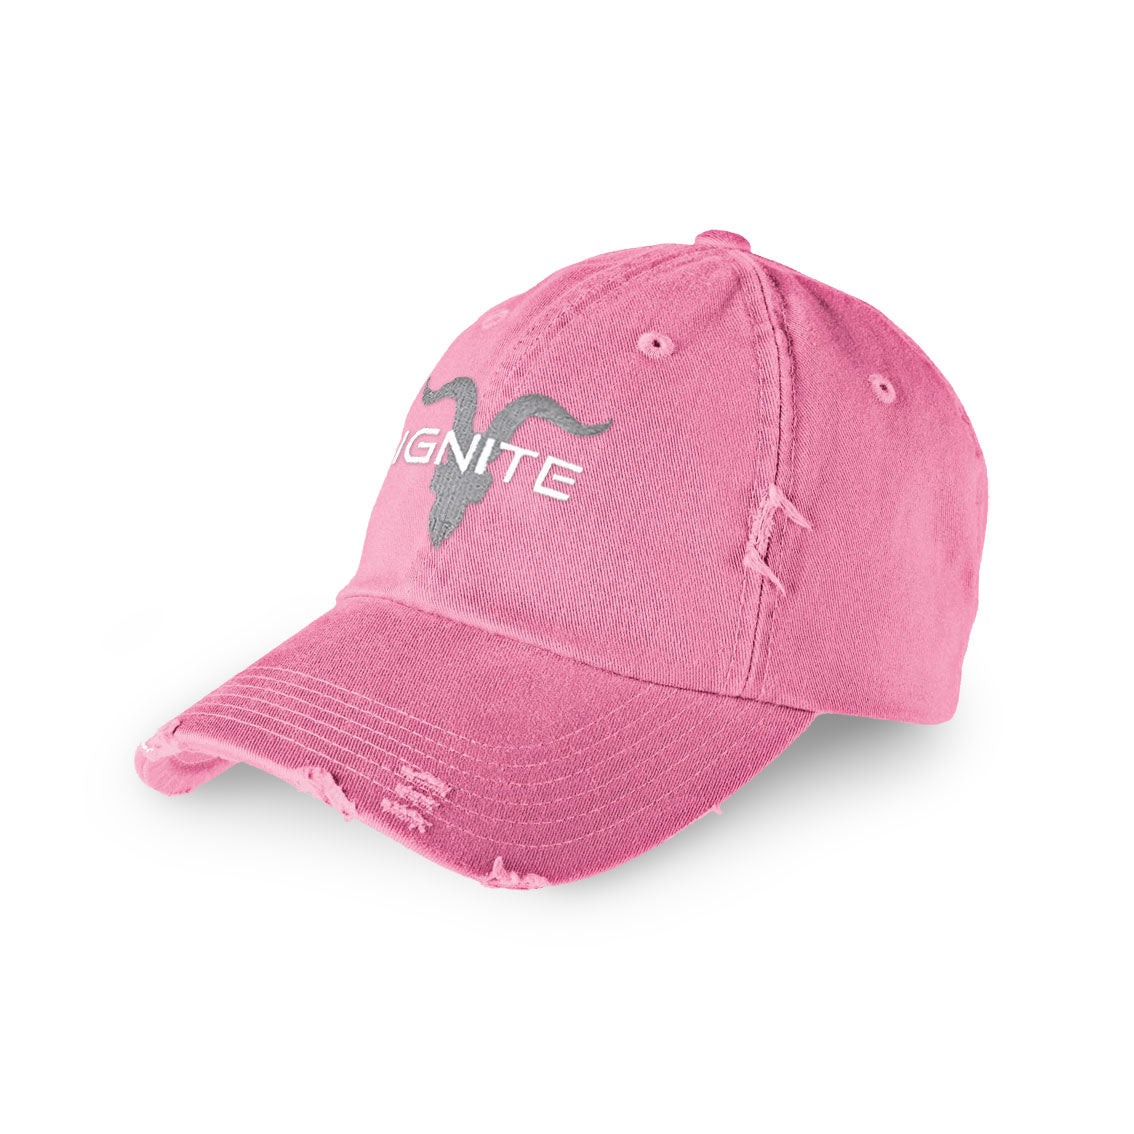 Ignite Premium Collection Distressed Dad Hat - Pink with Grey Logo